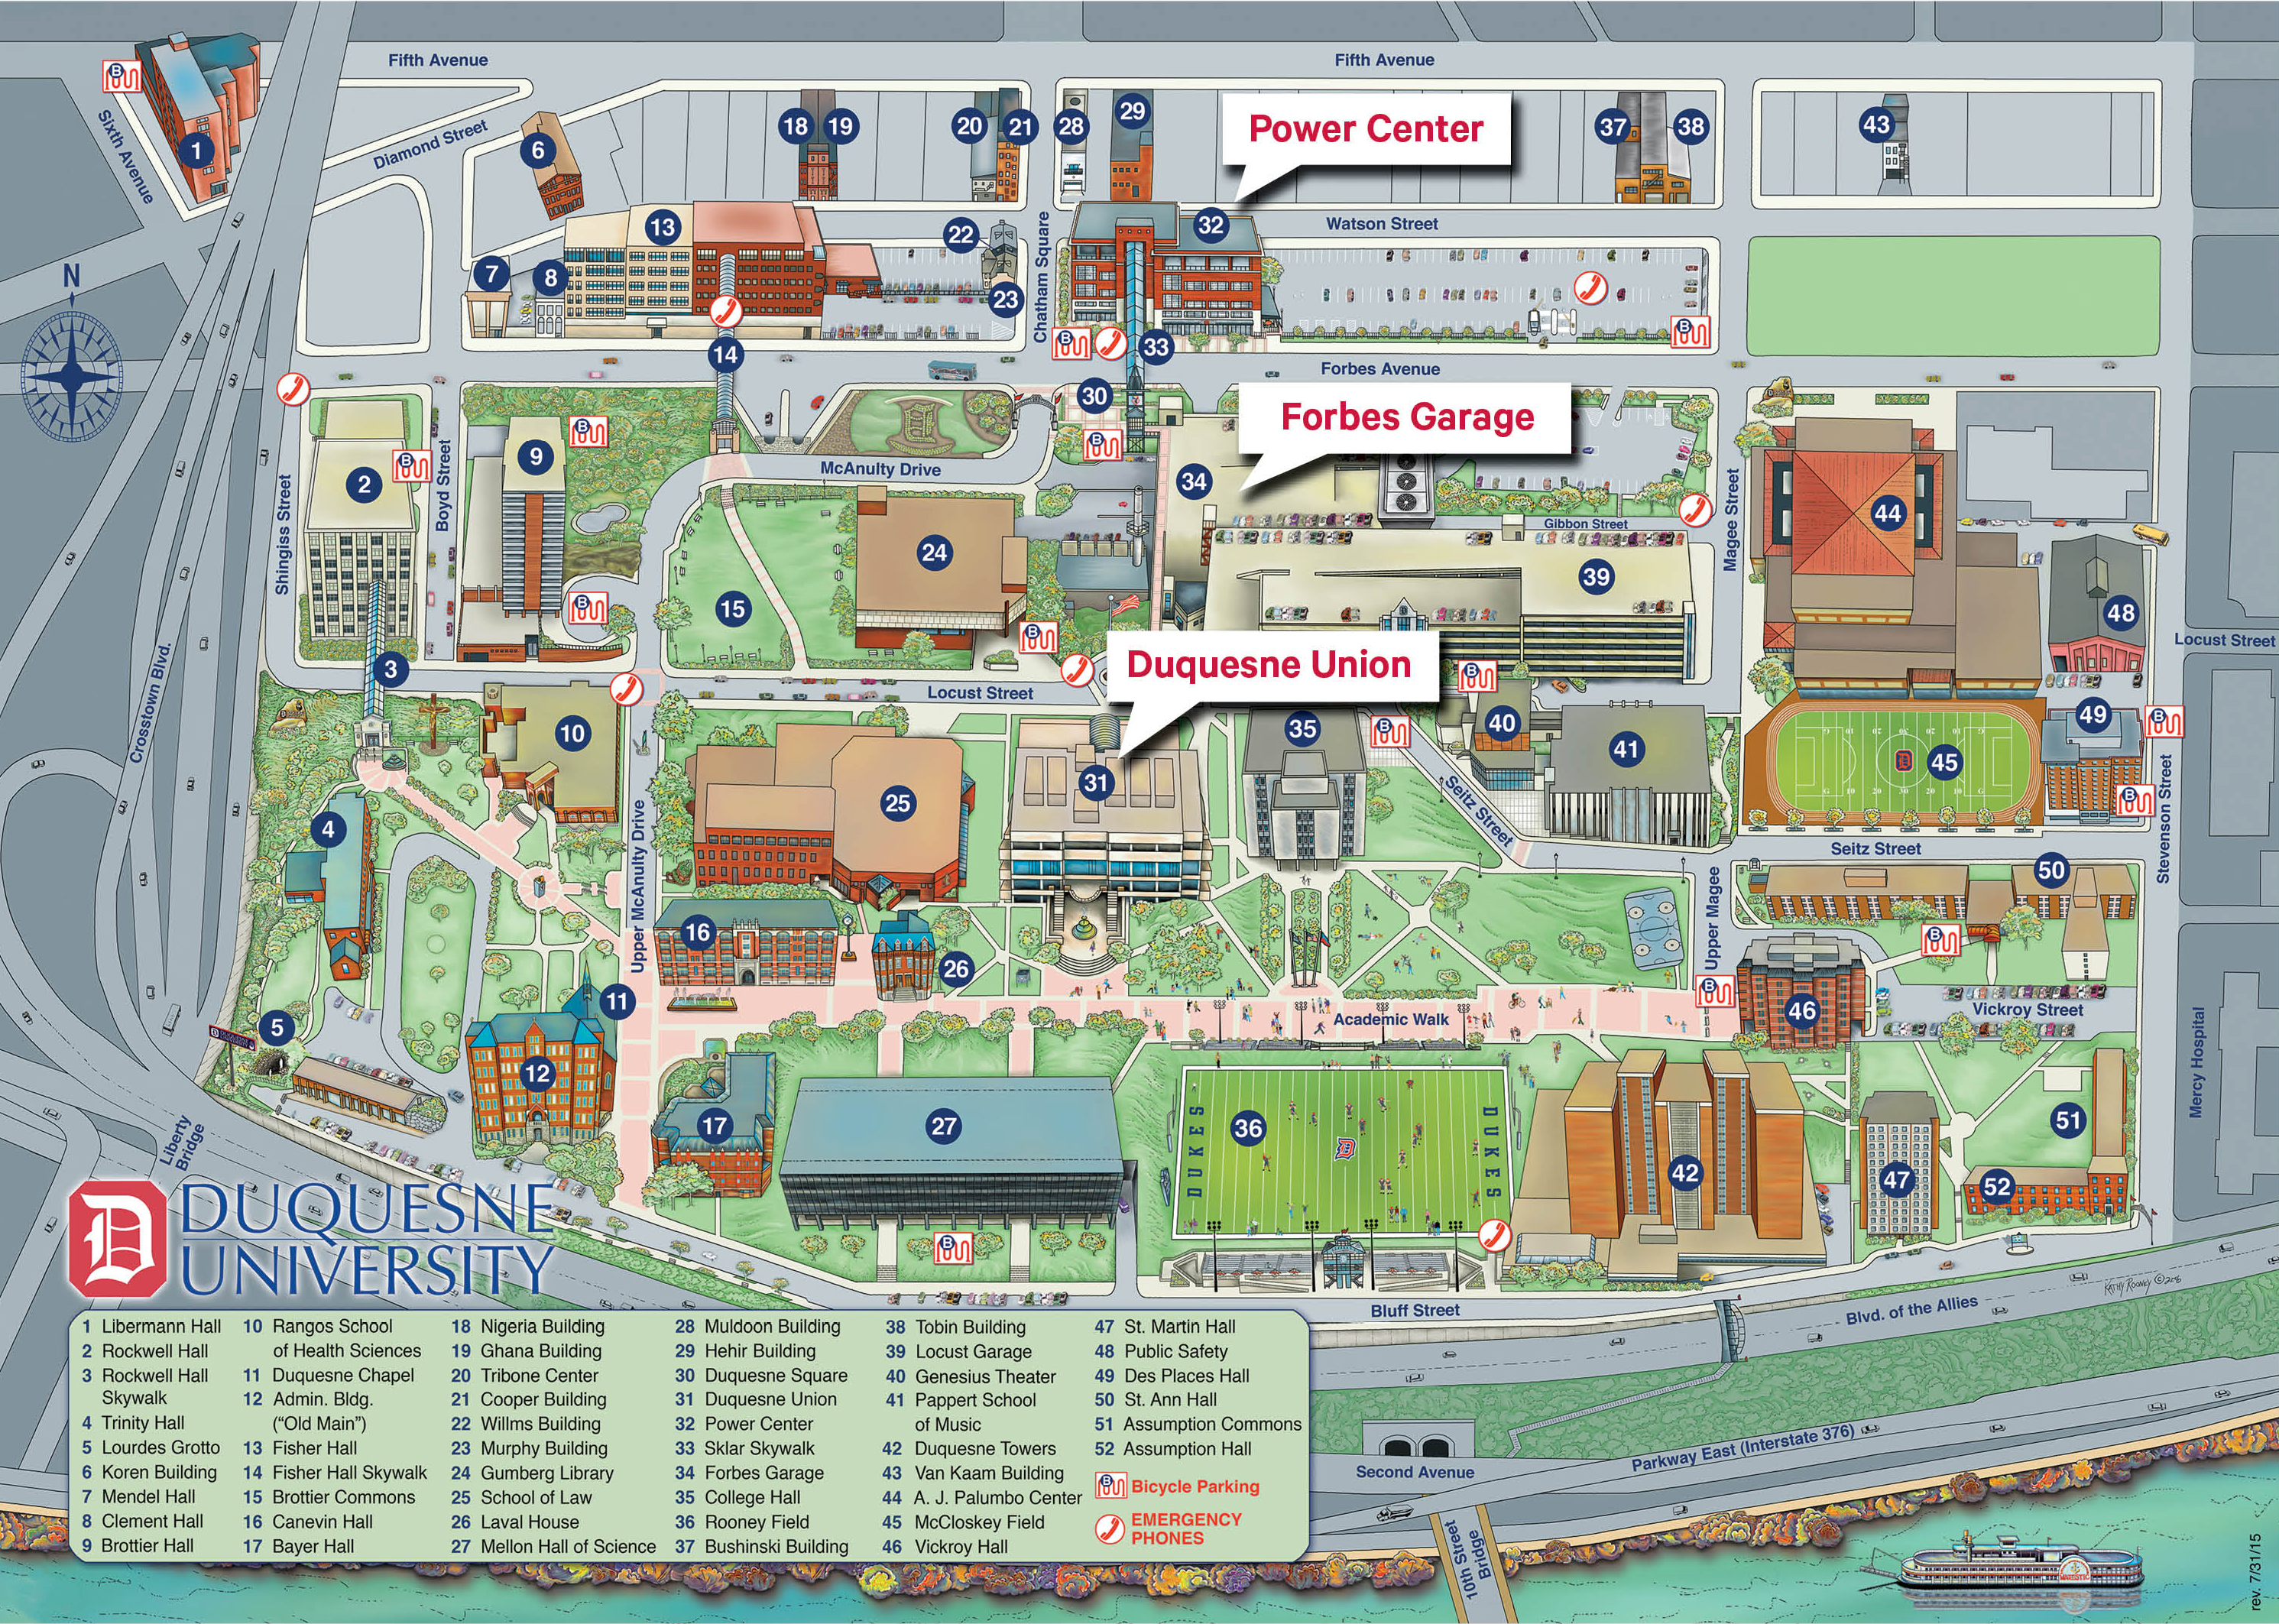 Duquesne University Map Duquesne Campus Map | fysiotherapieamstelstreek